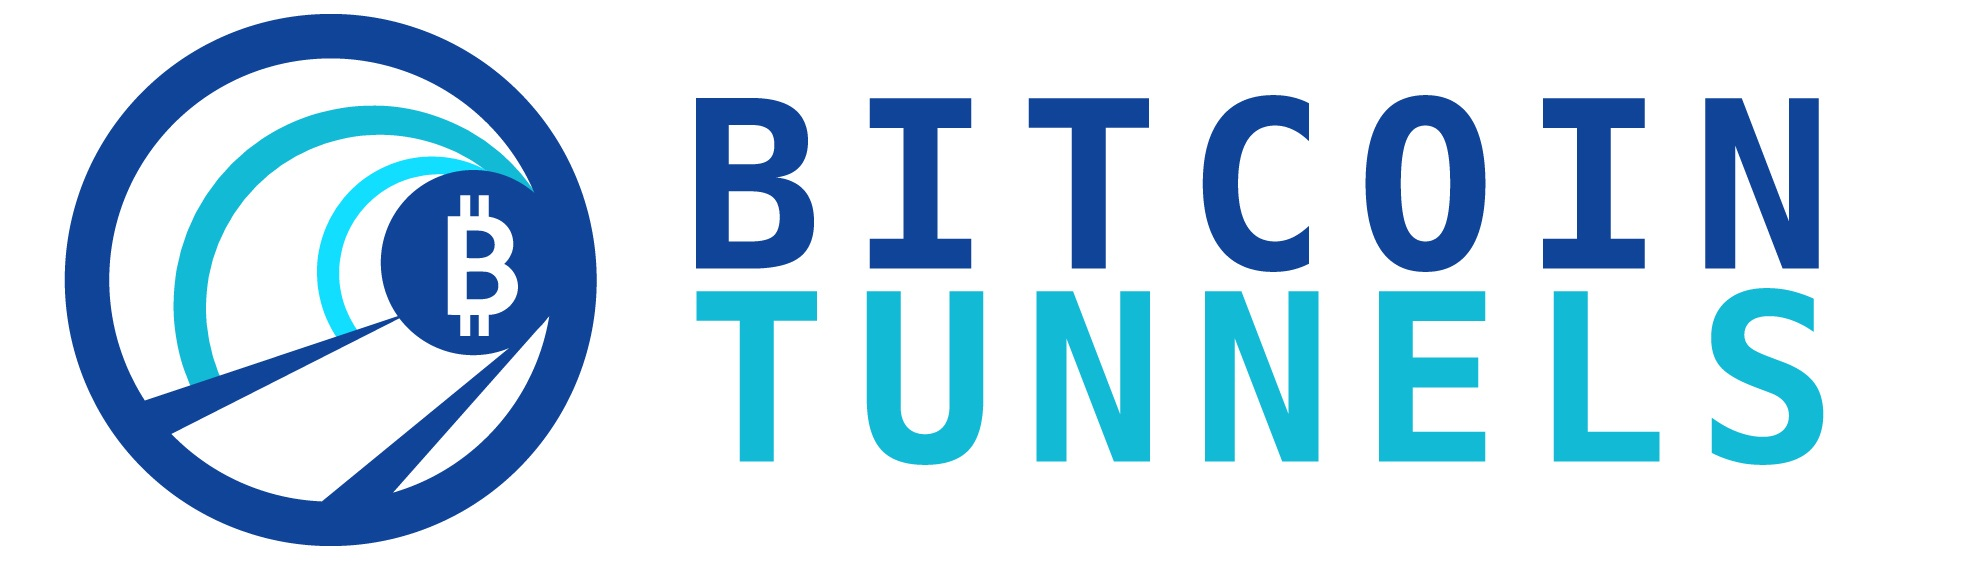 Bitcoin Tunnels Coupons